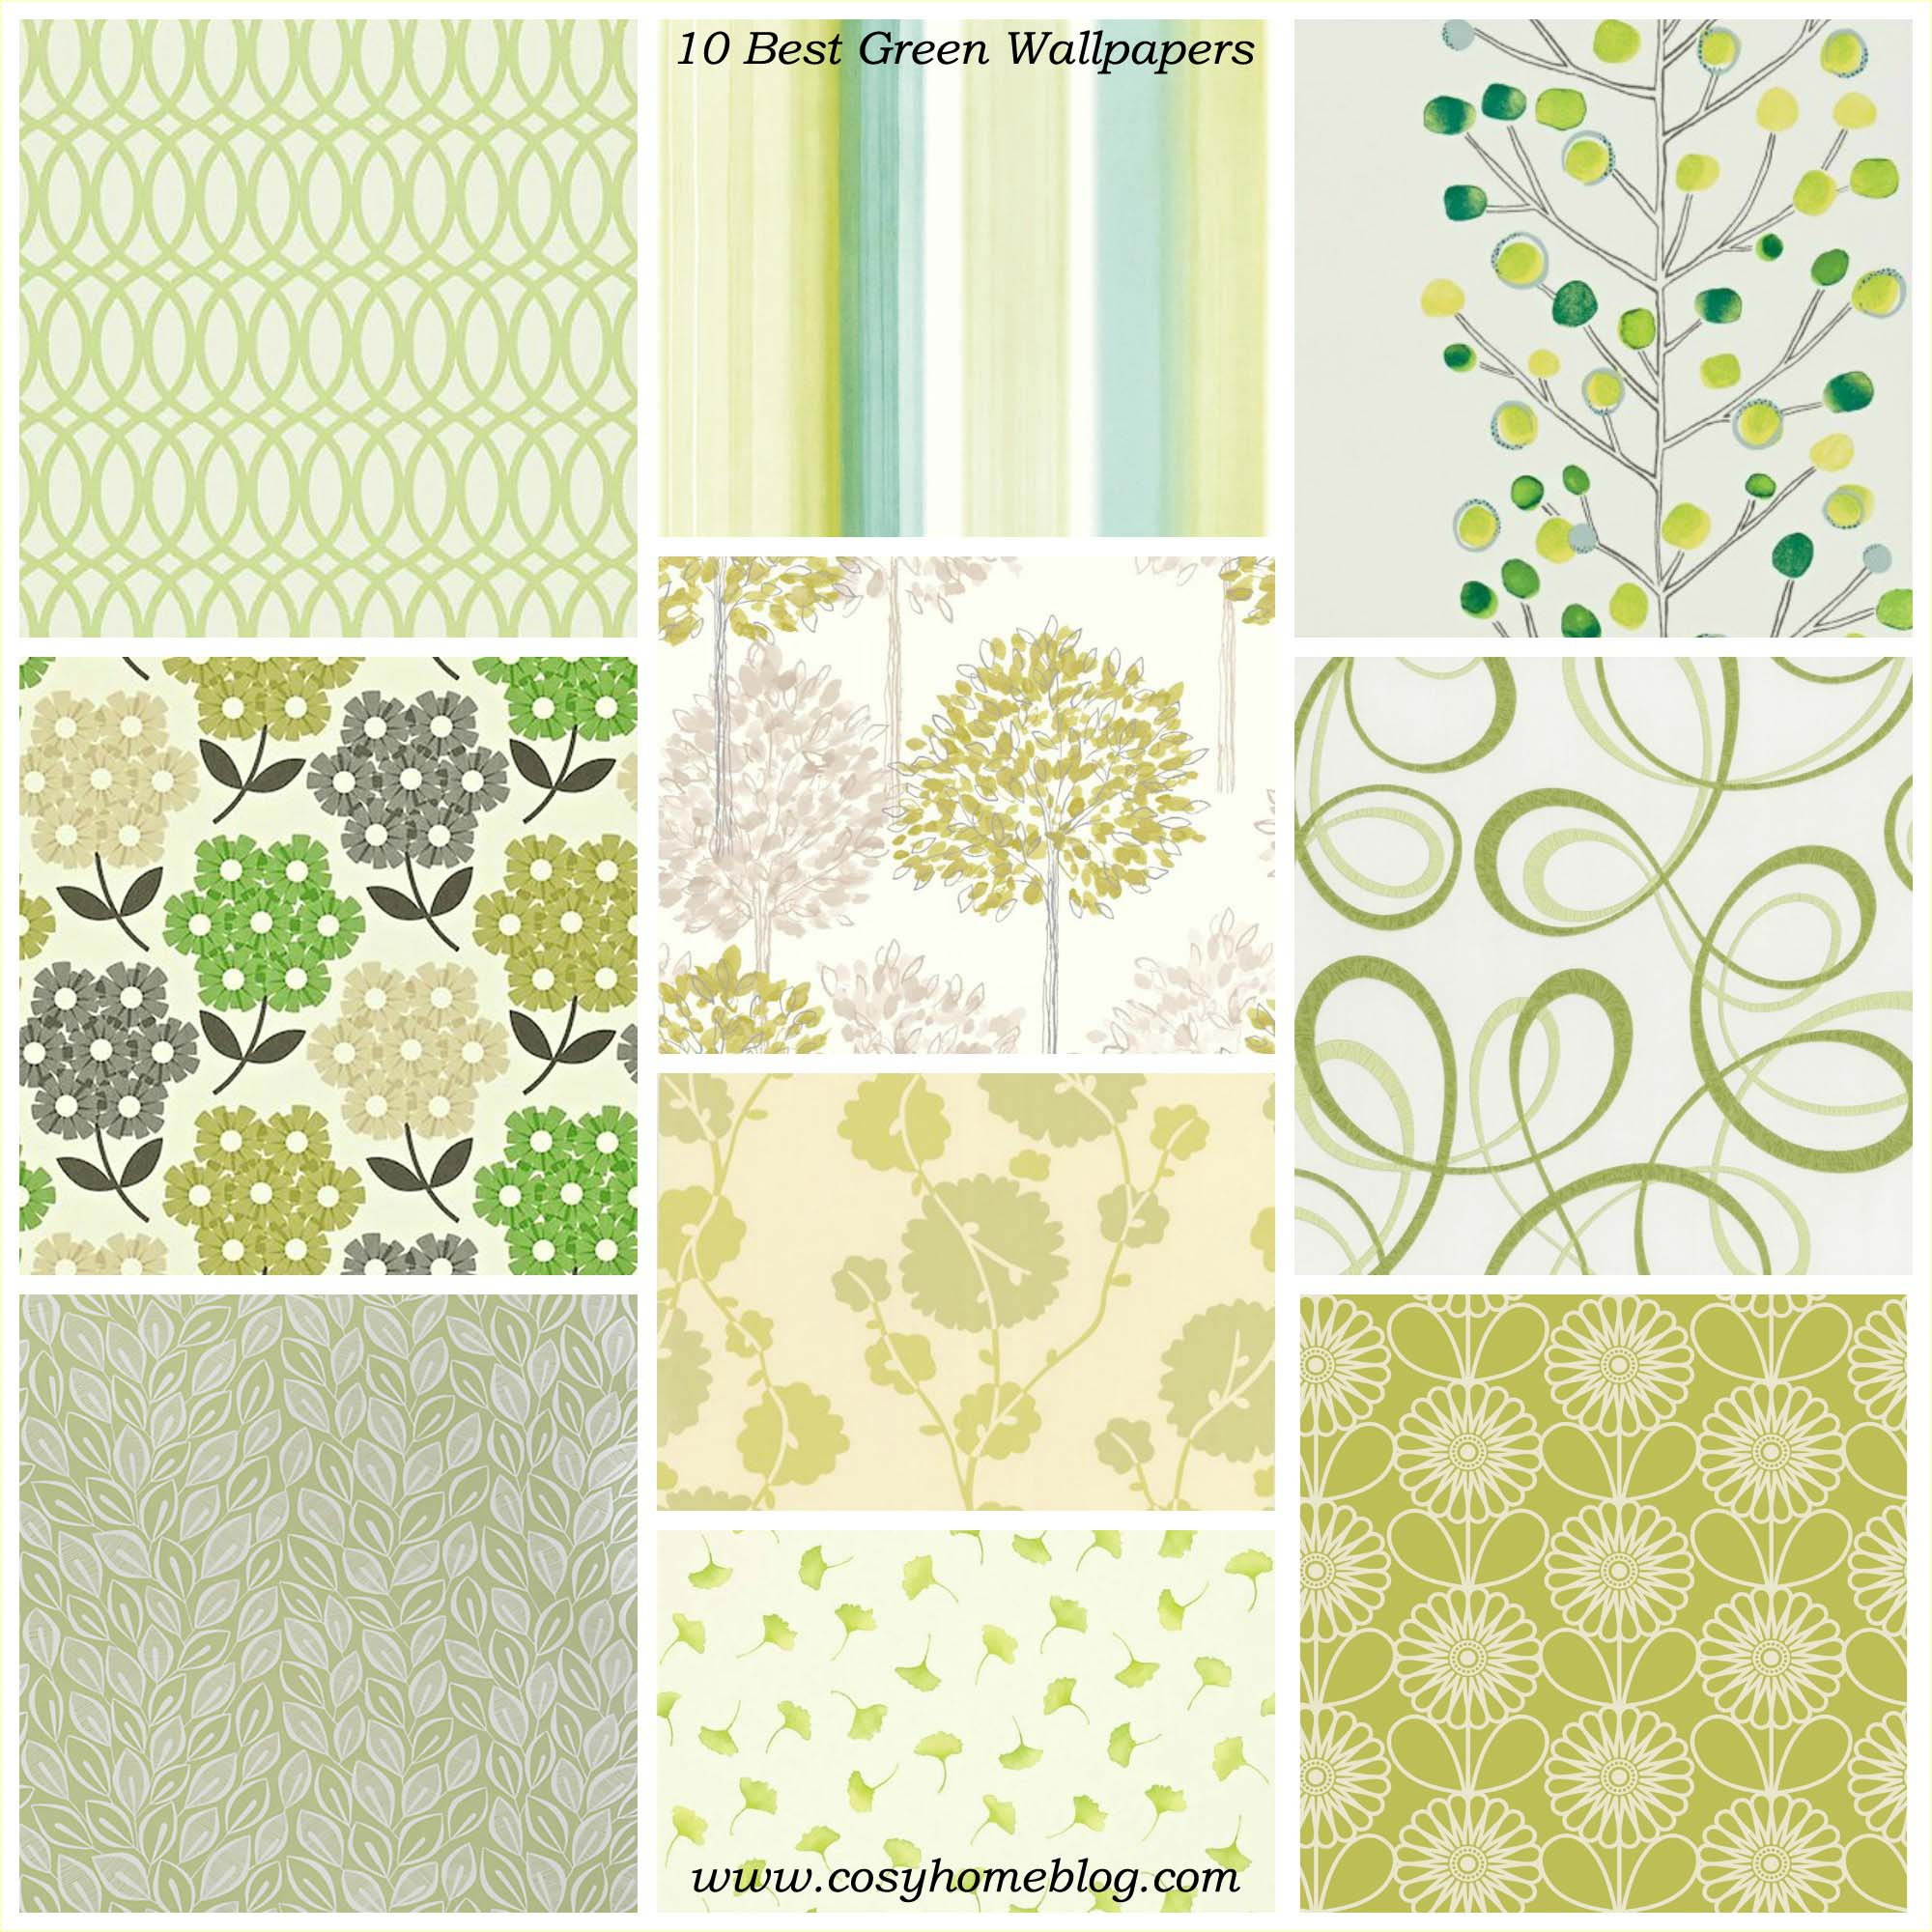 As a decorating colour green can be fresh calming and soothing so 2000x2000